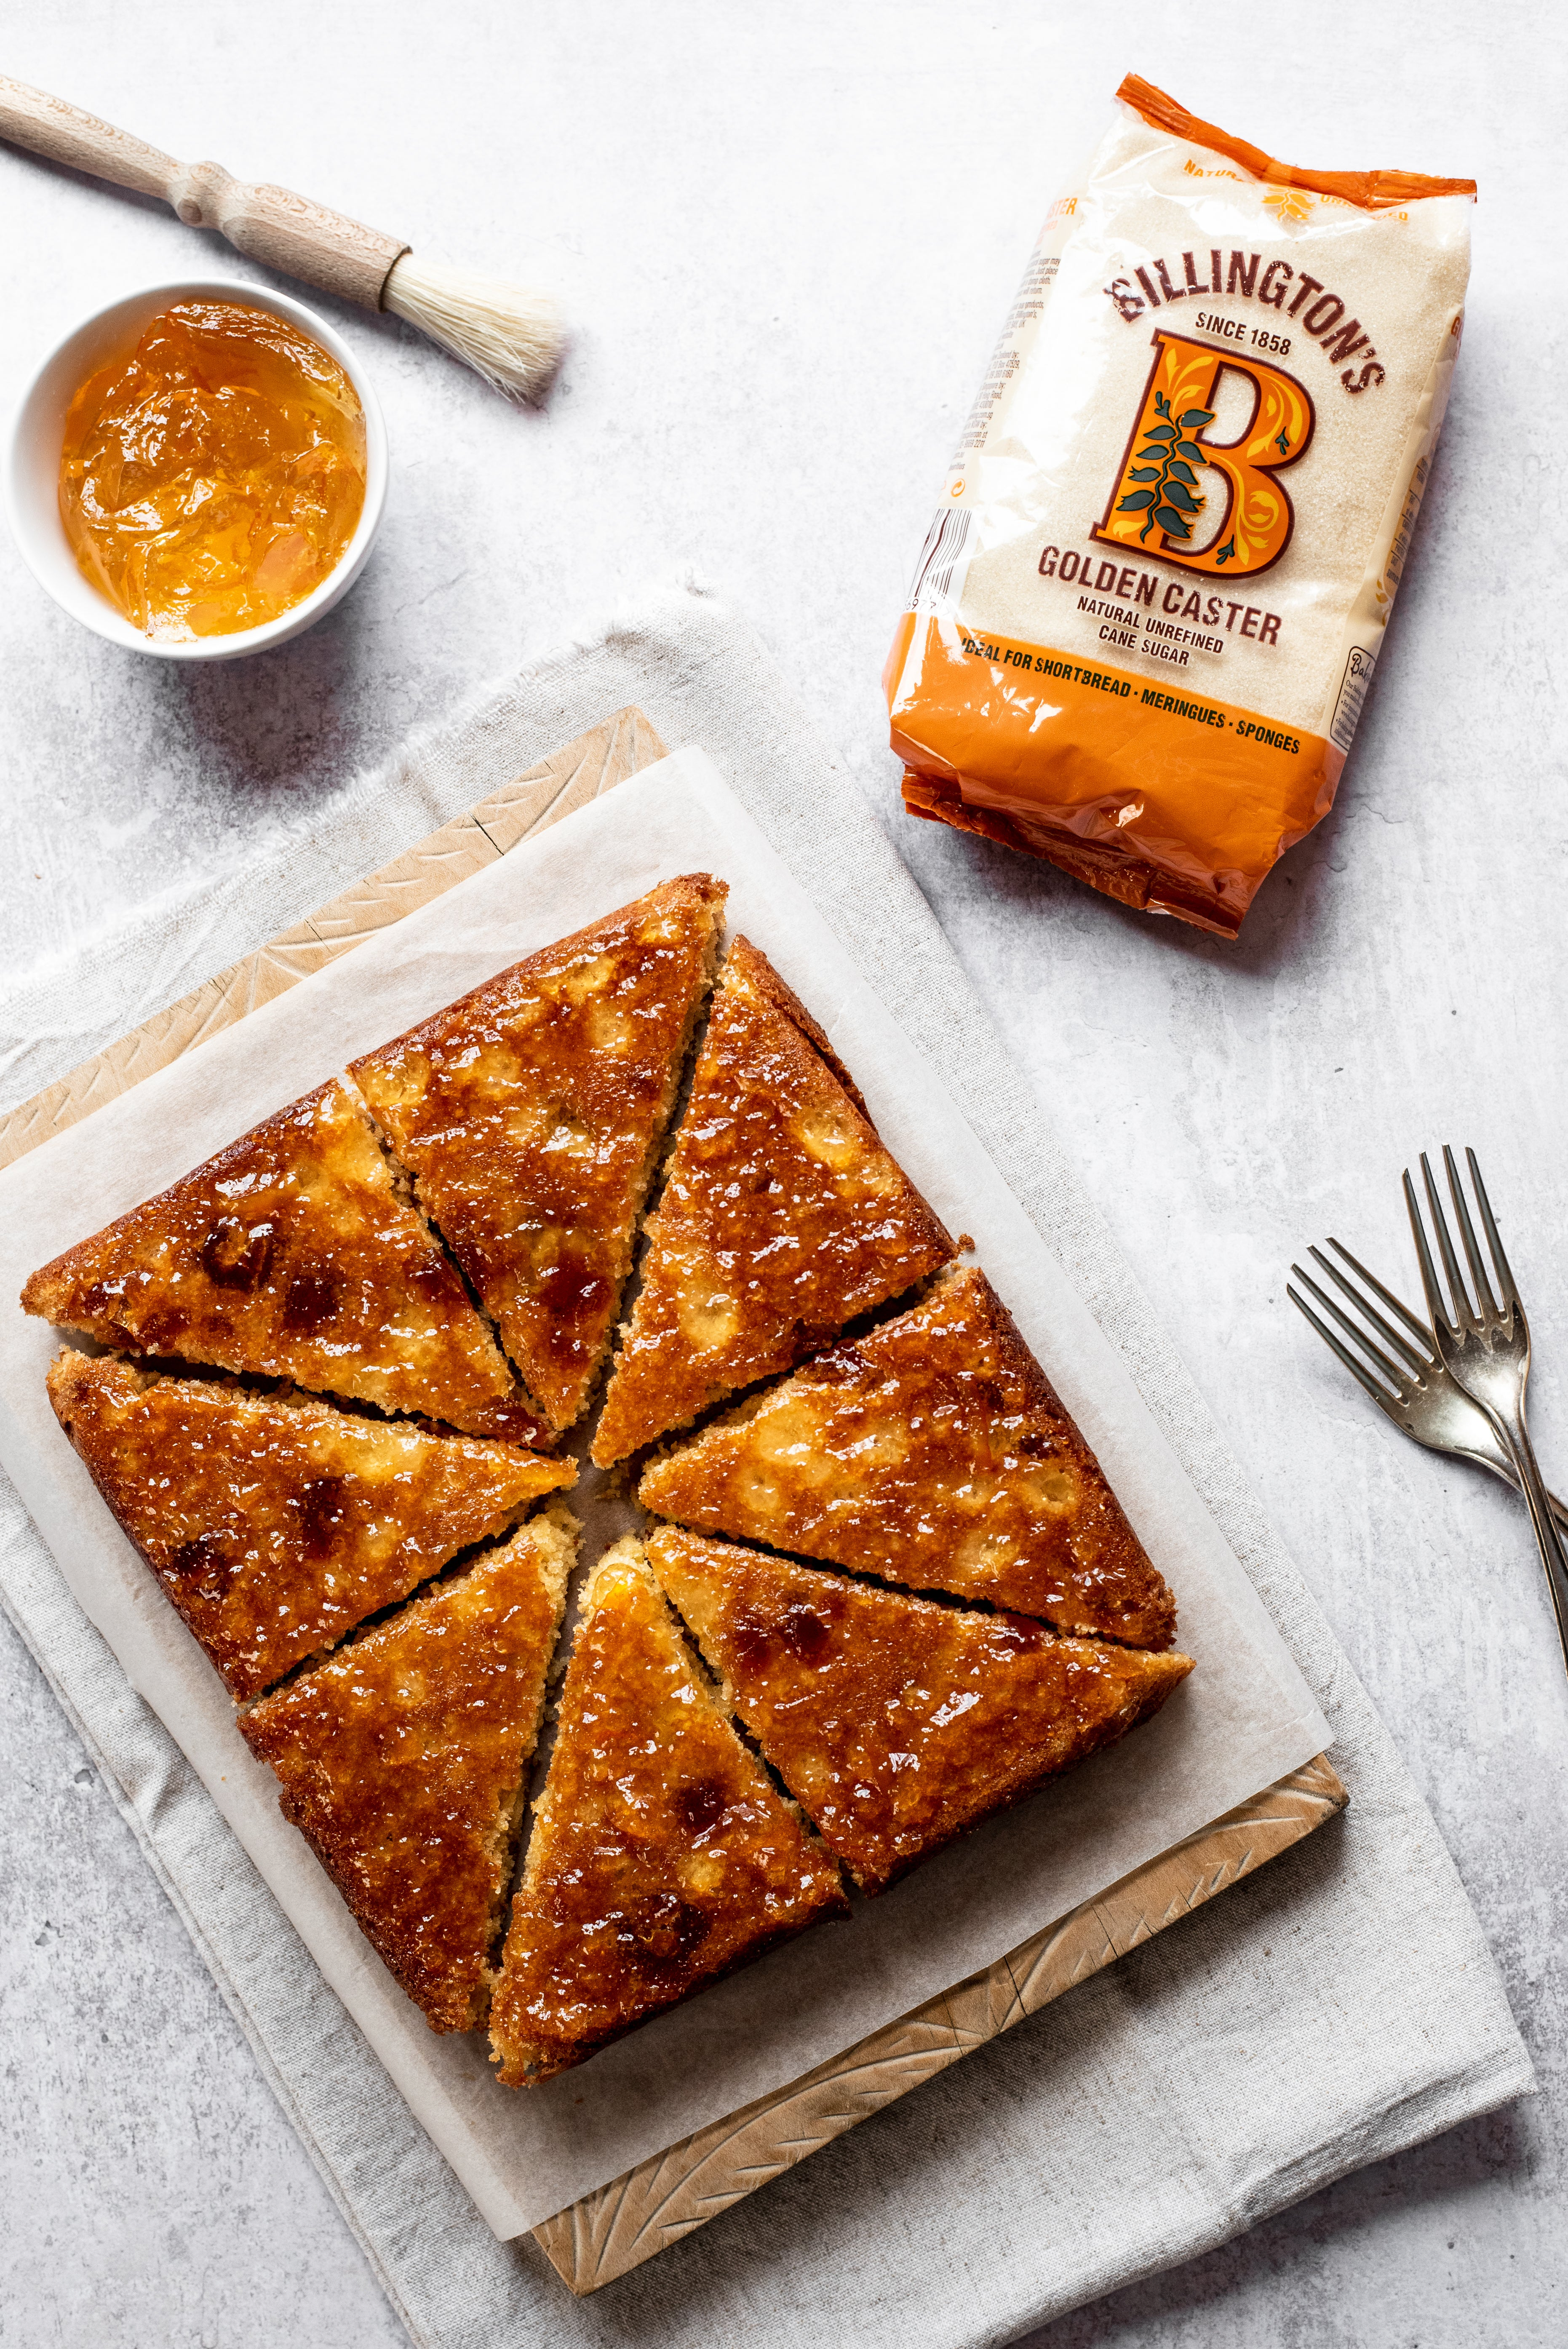 Marmalade Traybake lay on a sheet of baking paper, next to a bag of Billington's Golden Caster sugar and forks